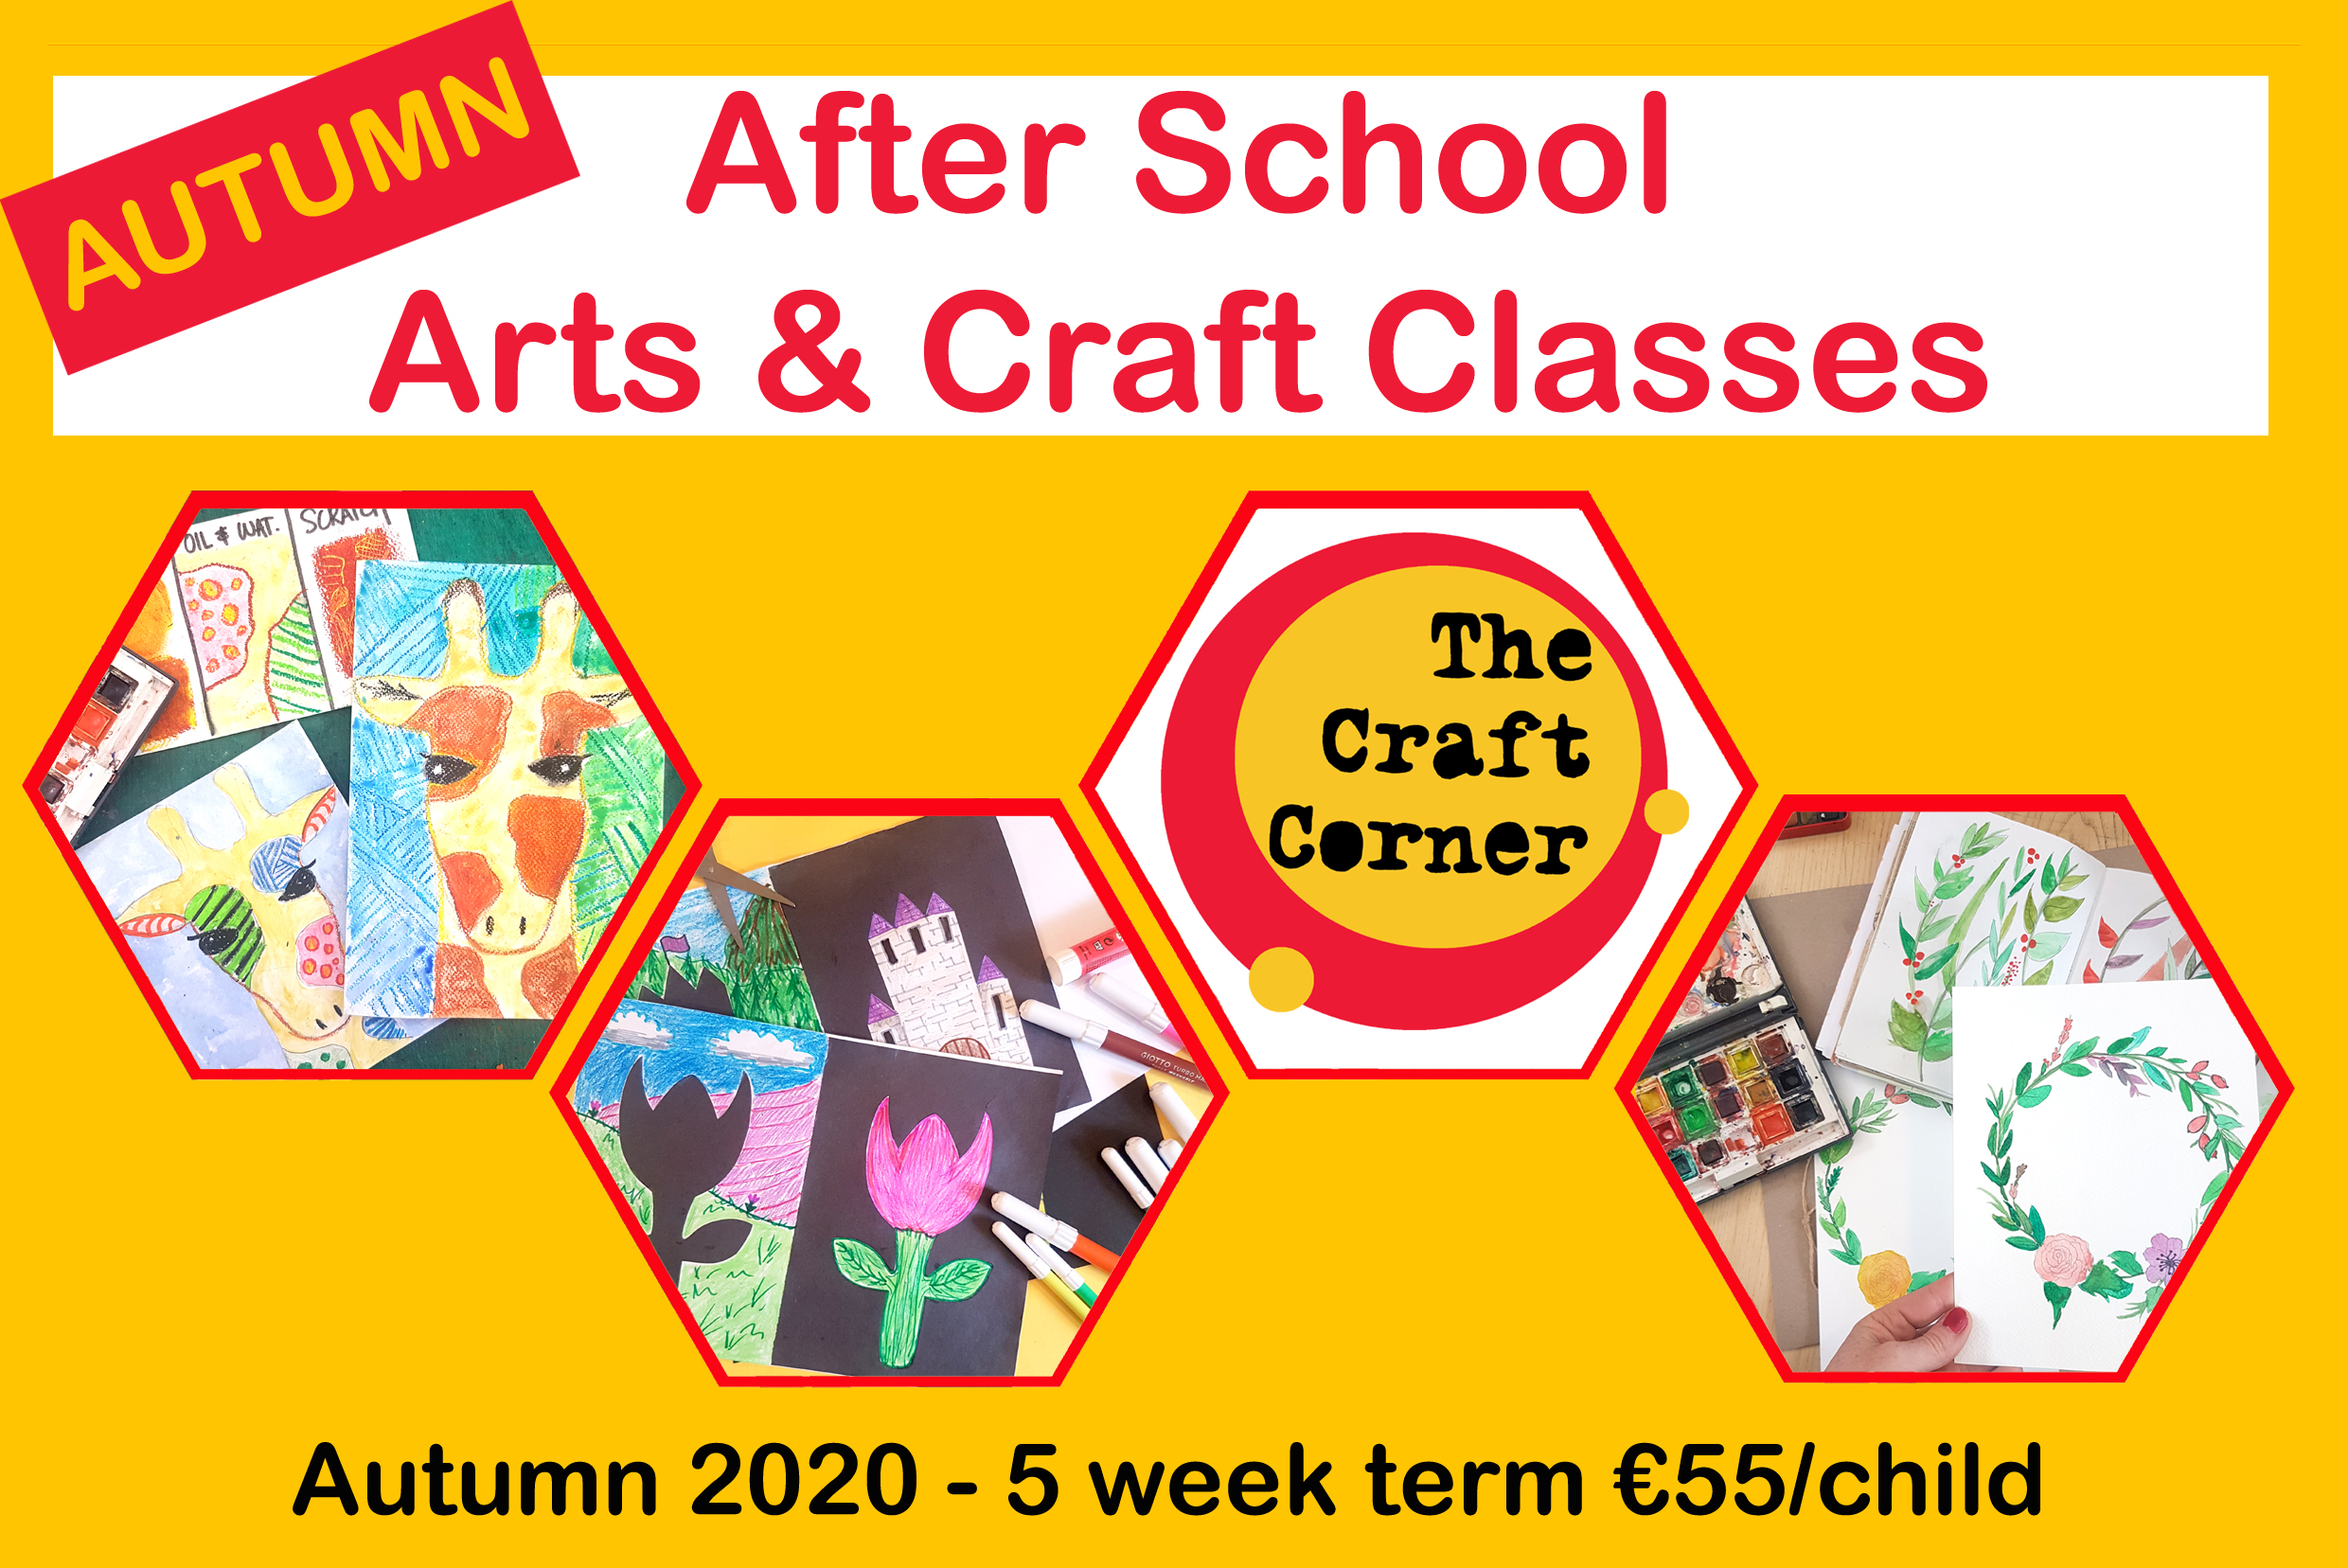 autumn 2020 after school arts and crafts classes